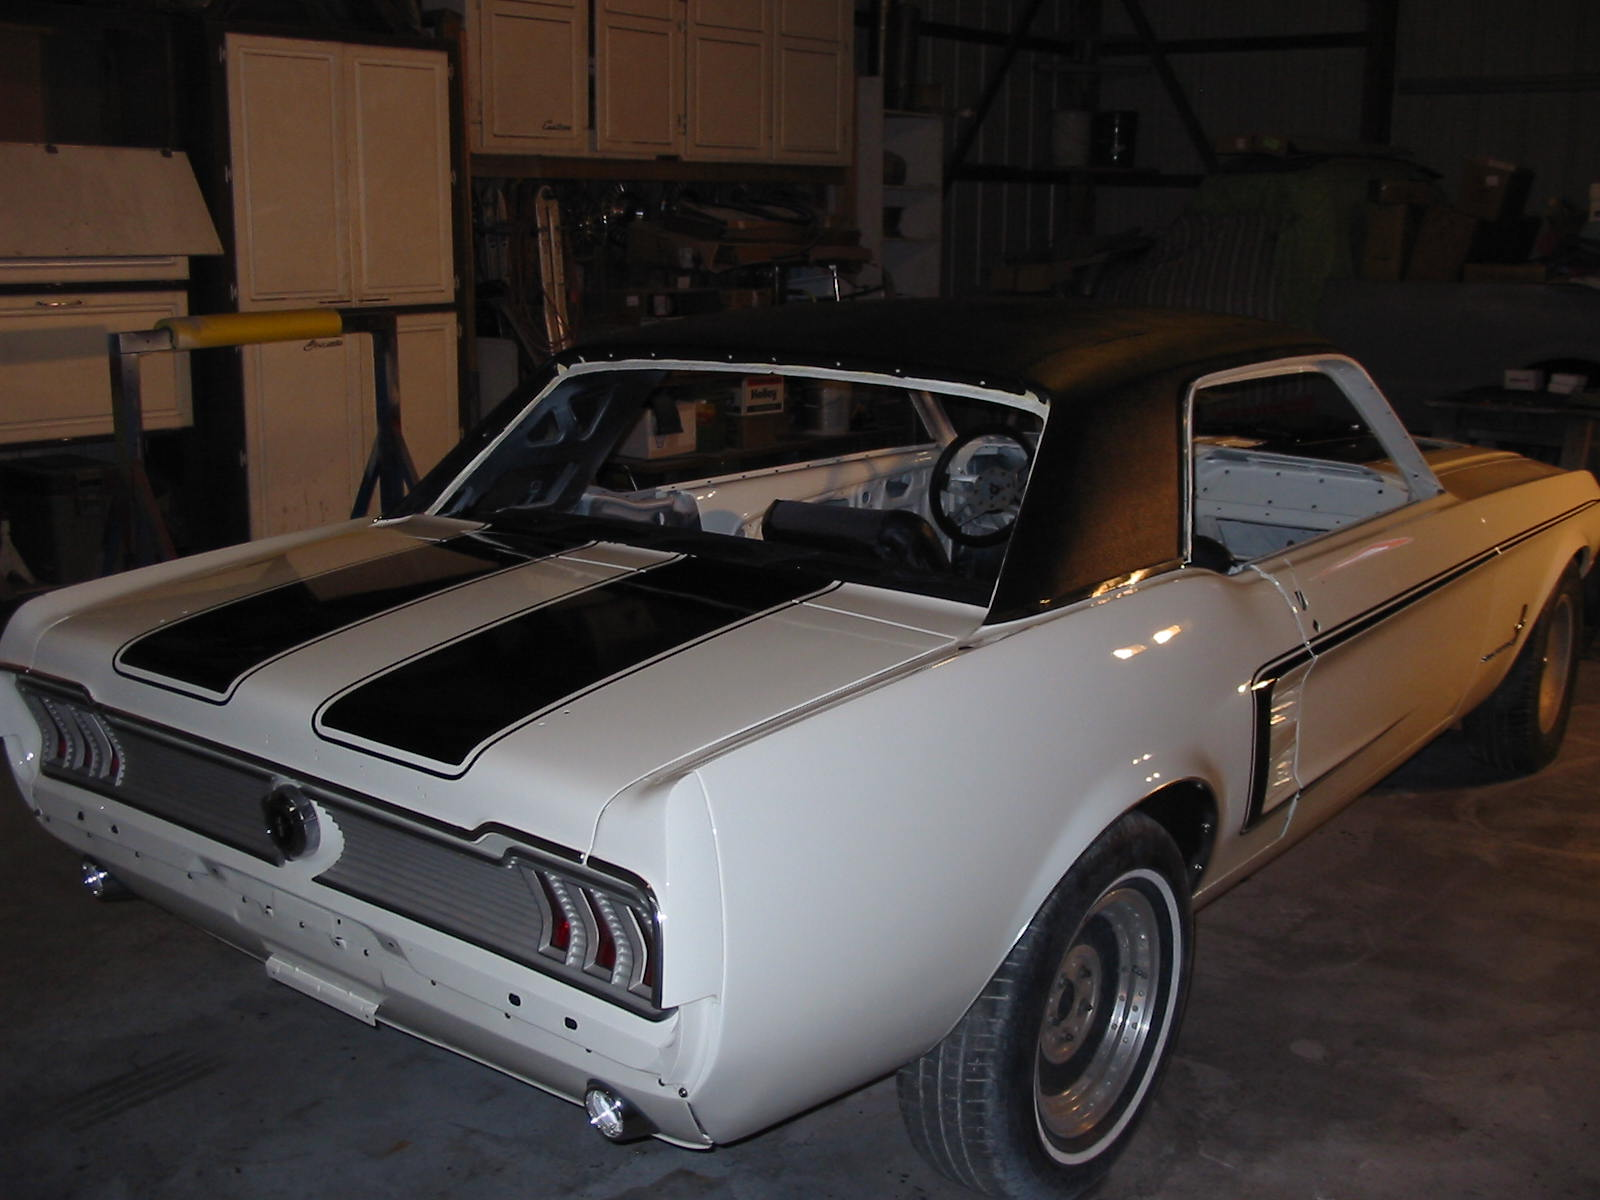 Click image for larger version  Name:Mustang 67 101108 04.JPG Views:144 Size:160.3 KB ID:49828